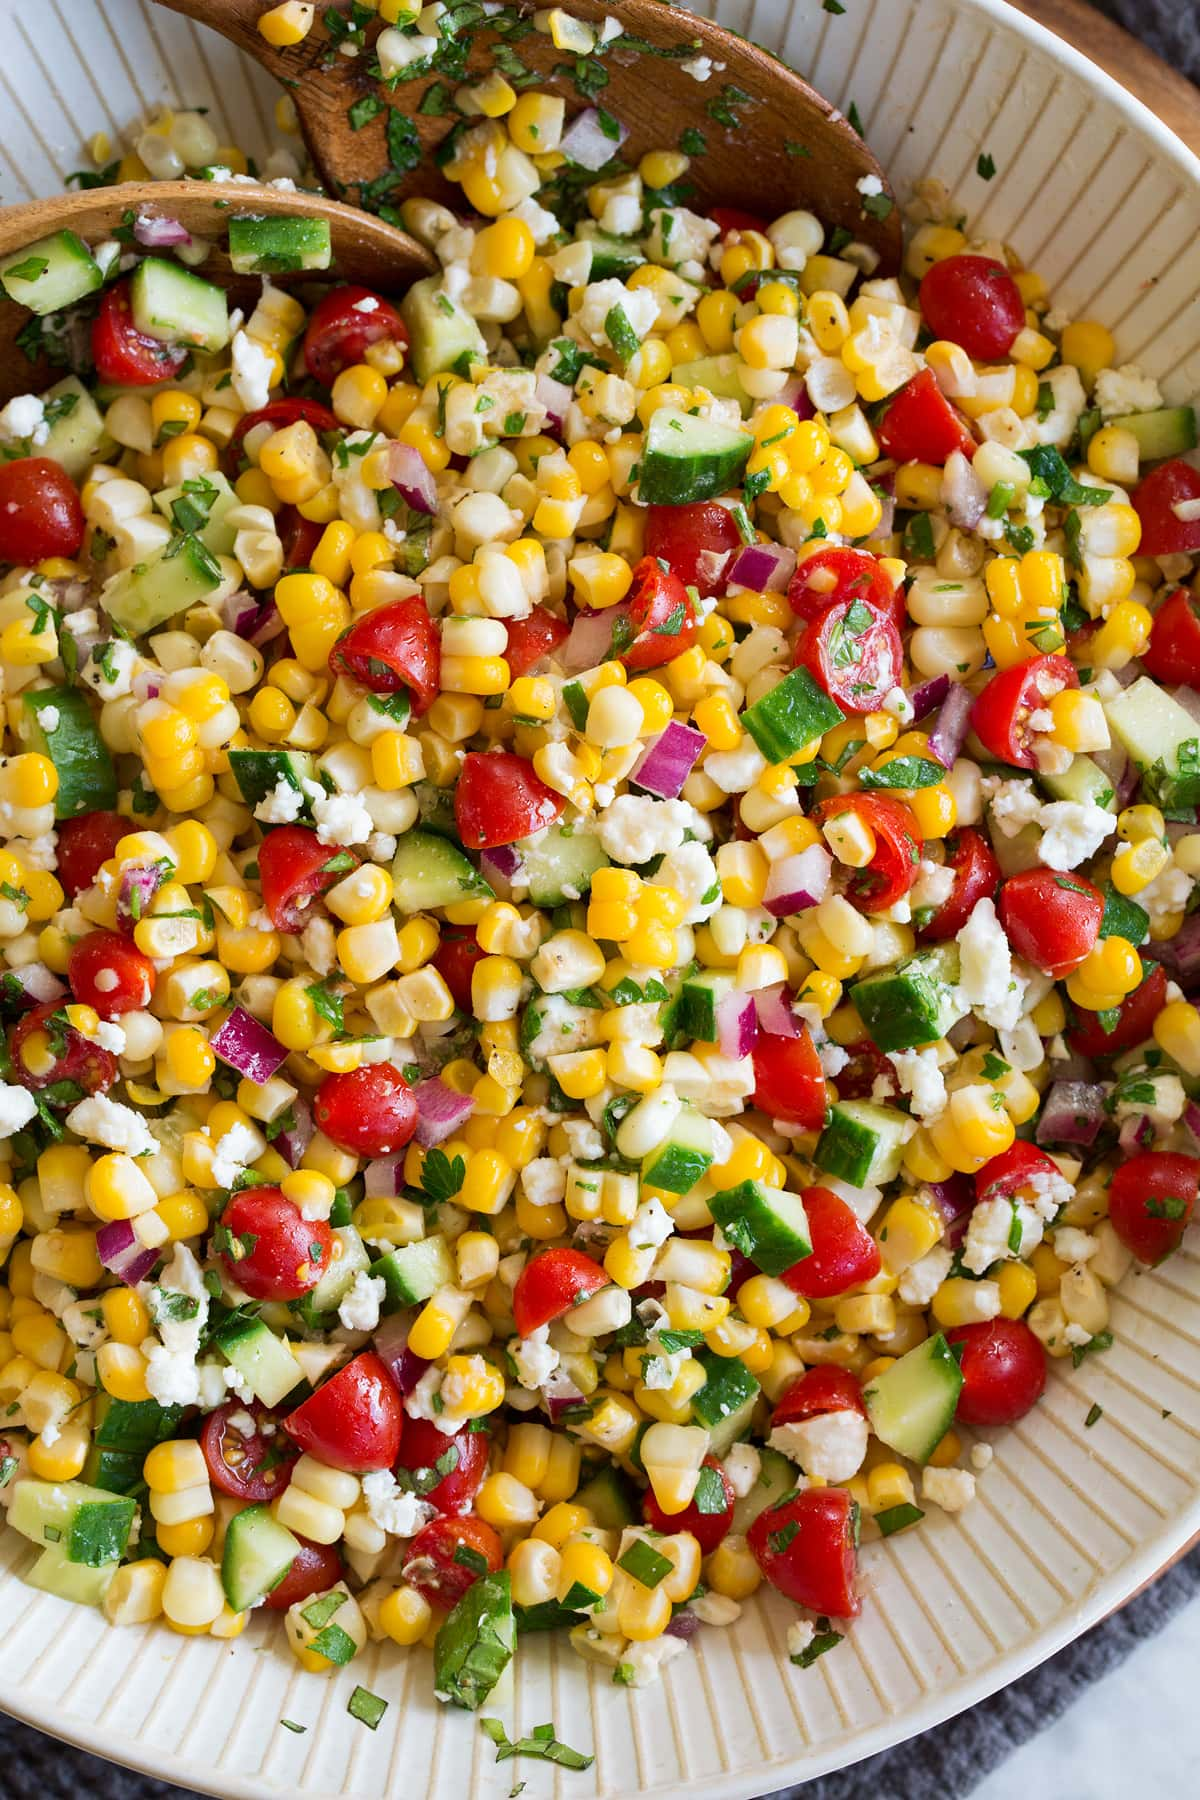 Photo: Corn salad shown close up from above in a serving bowl with wooden serving spoons.